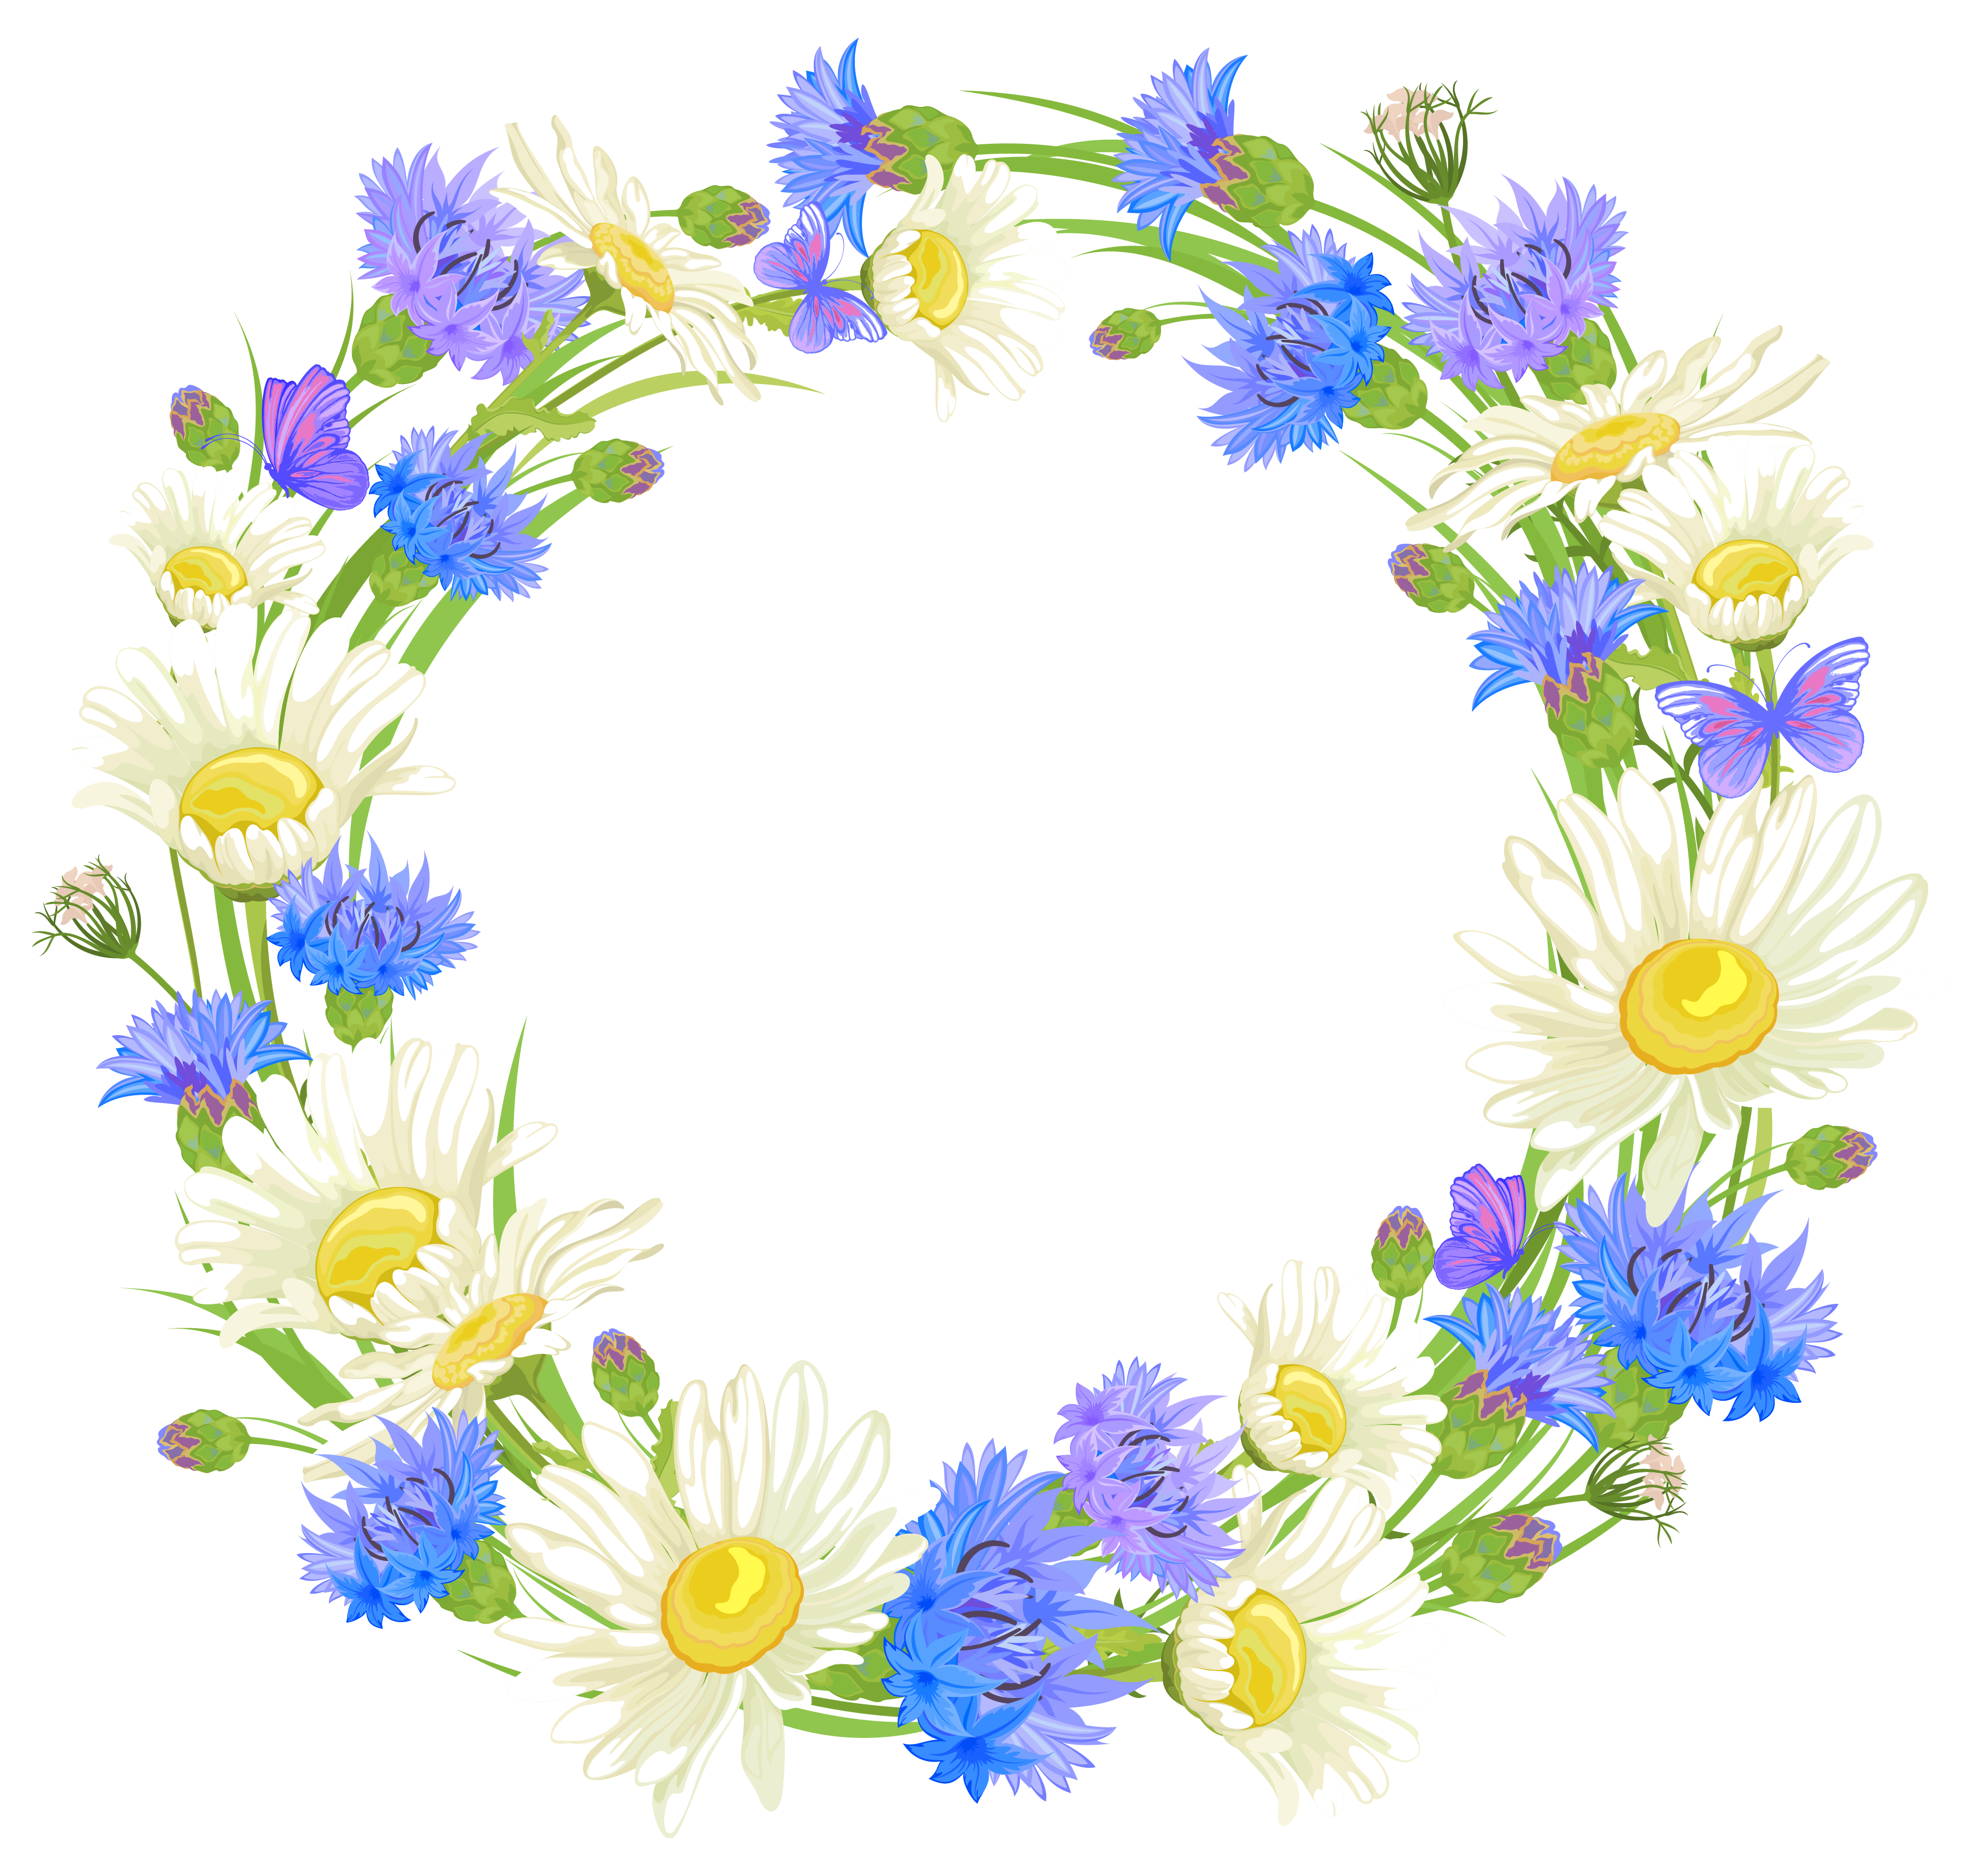 Field flowers wreath png. Clipart box watercolor